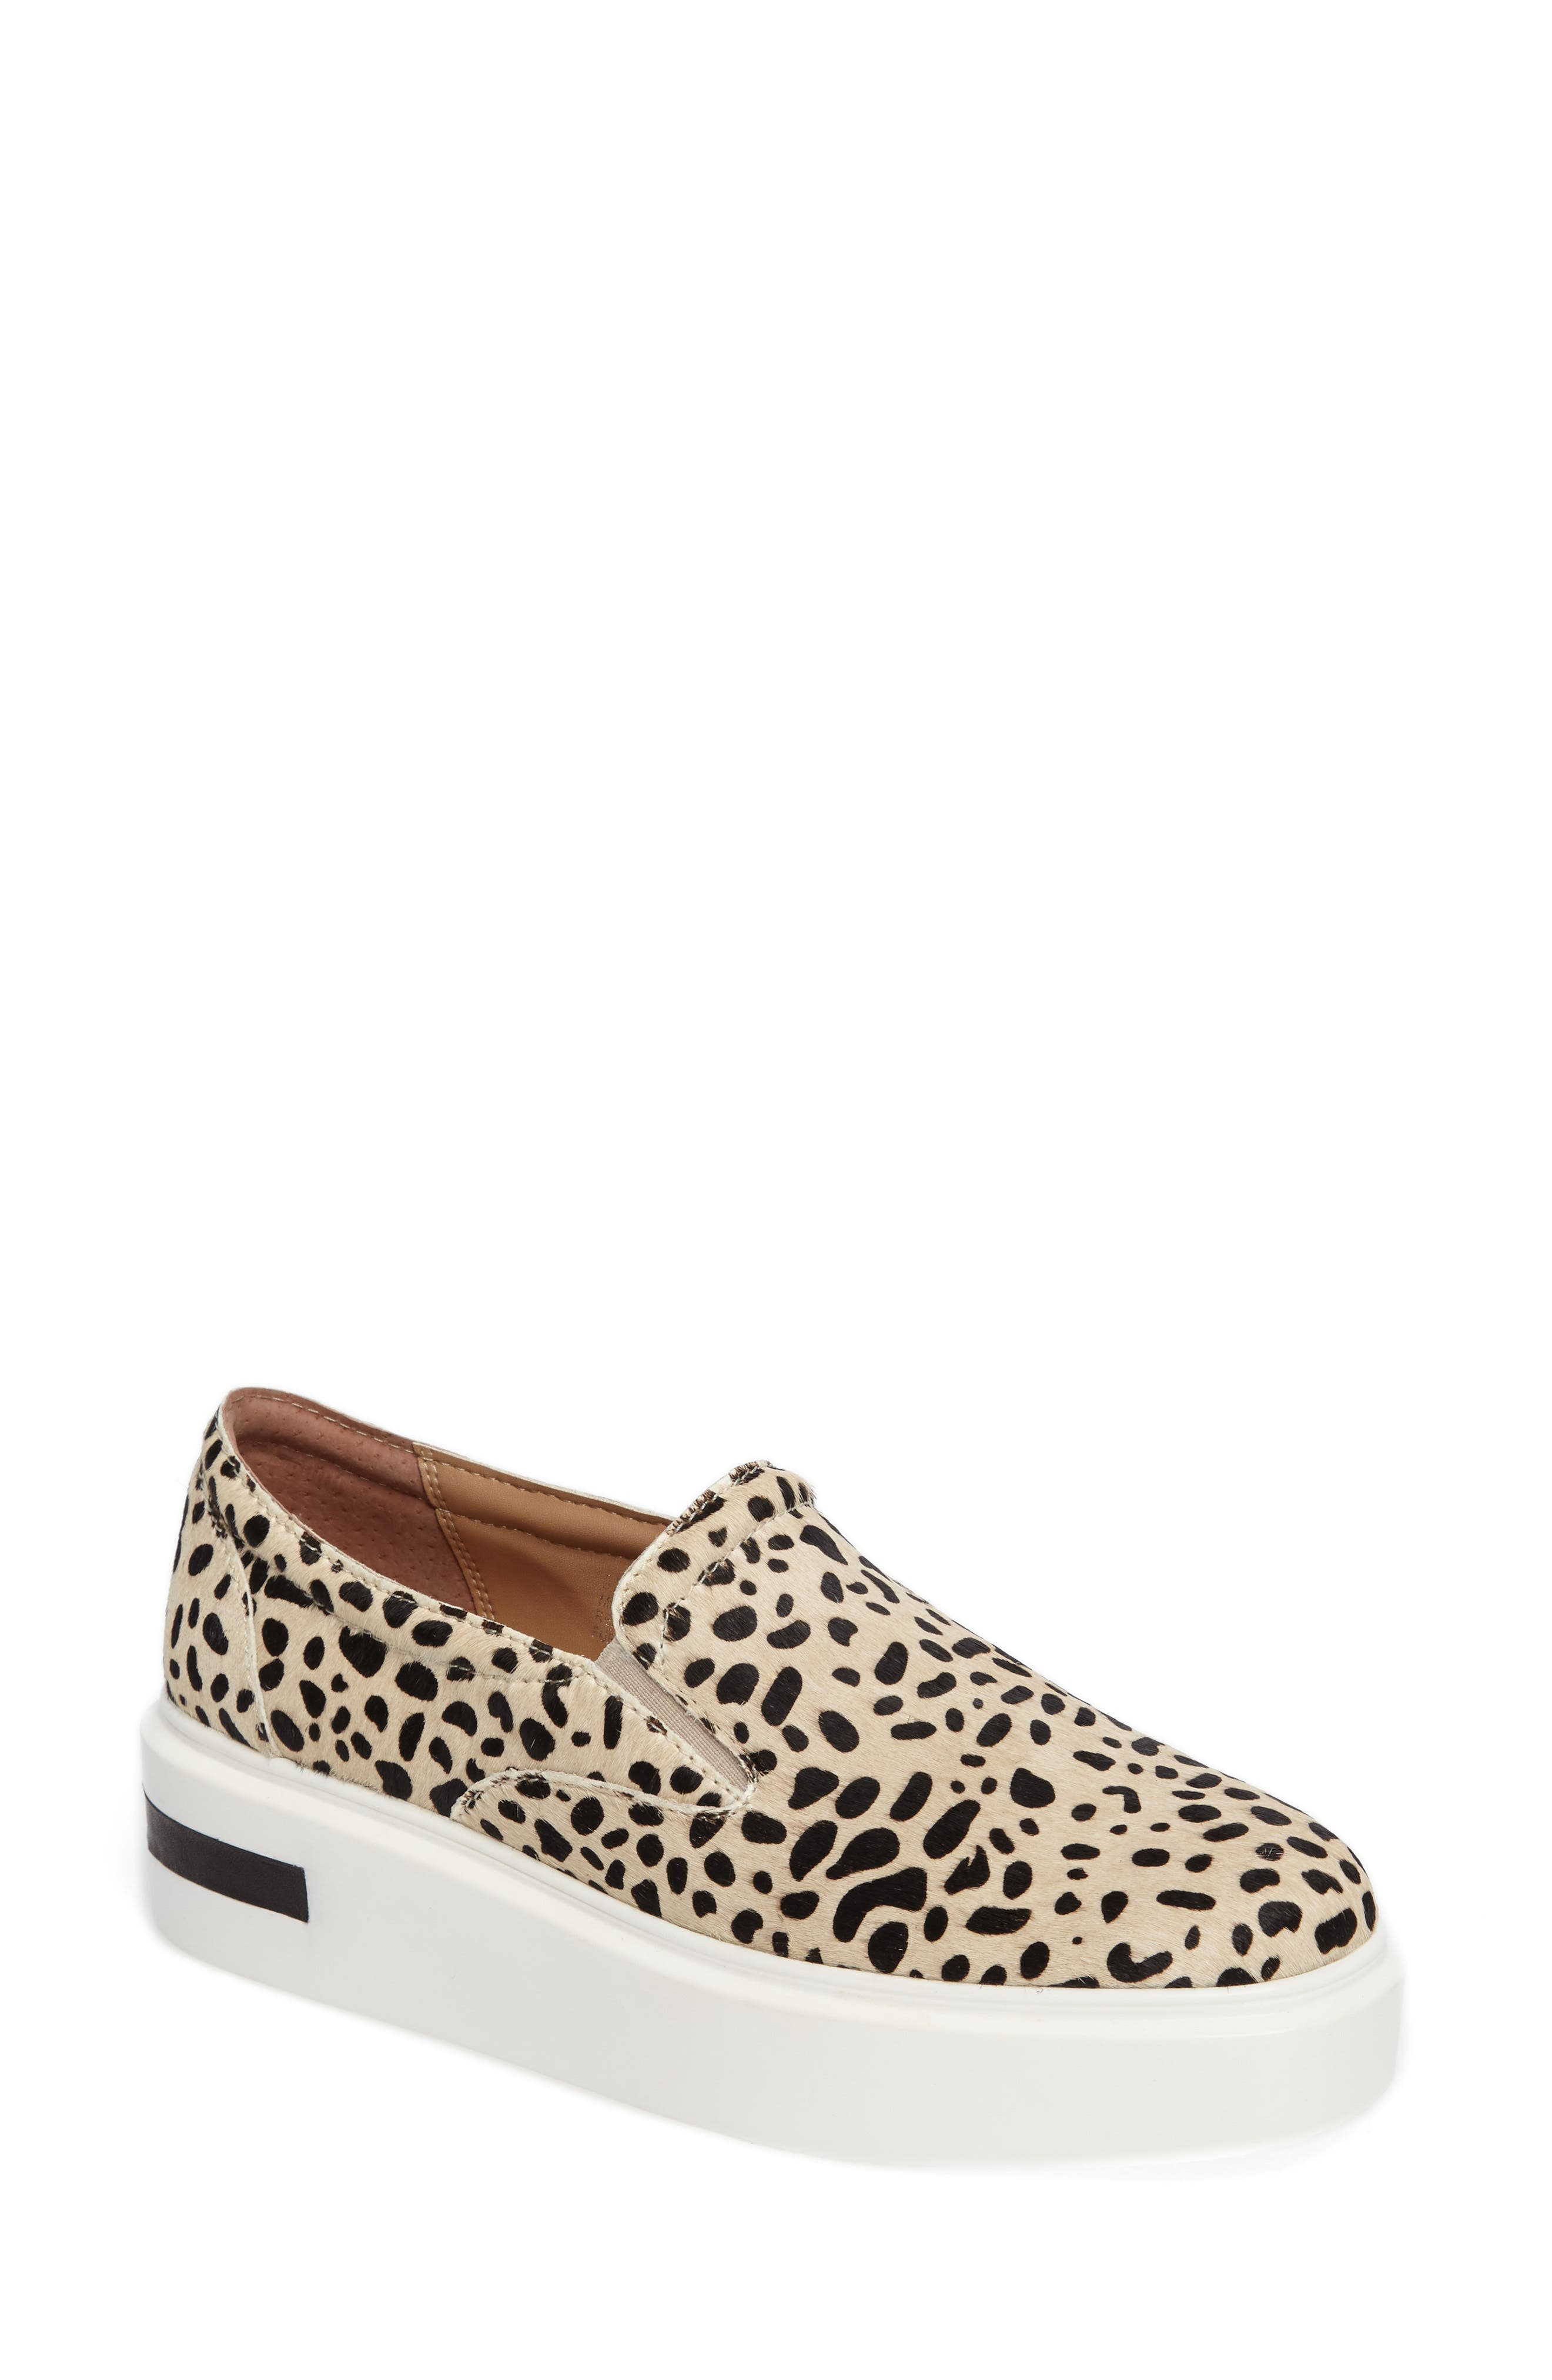 Alternate Image 1 Selected - Linea Paolo Fairfax II Genuine Calf Hair Platform Sneaker (Women)